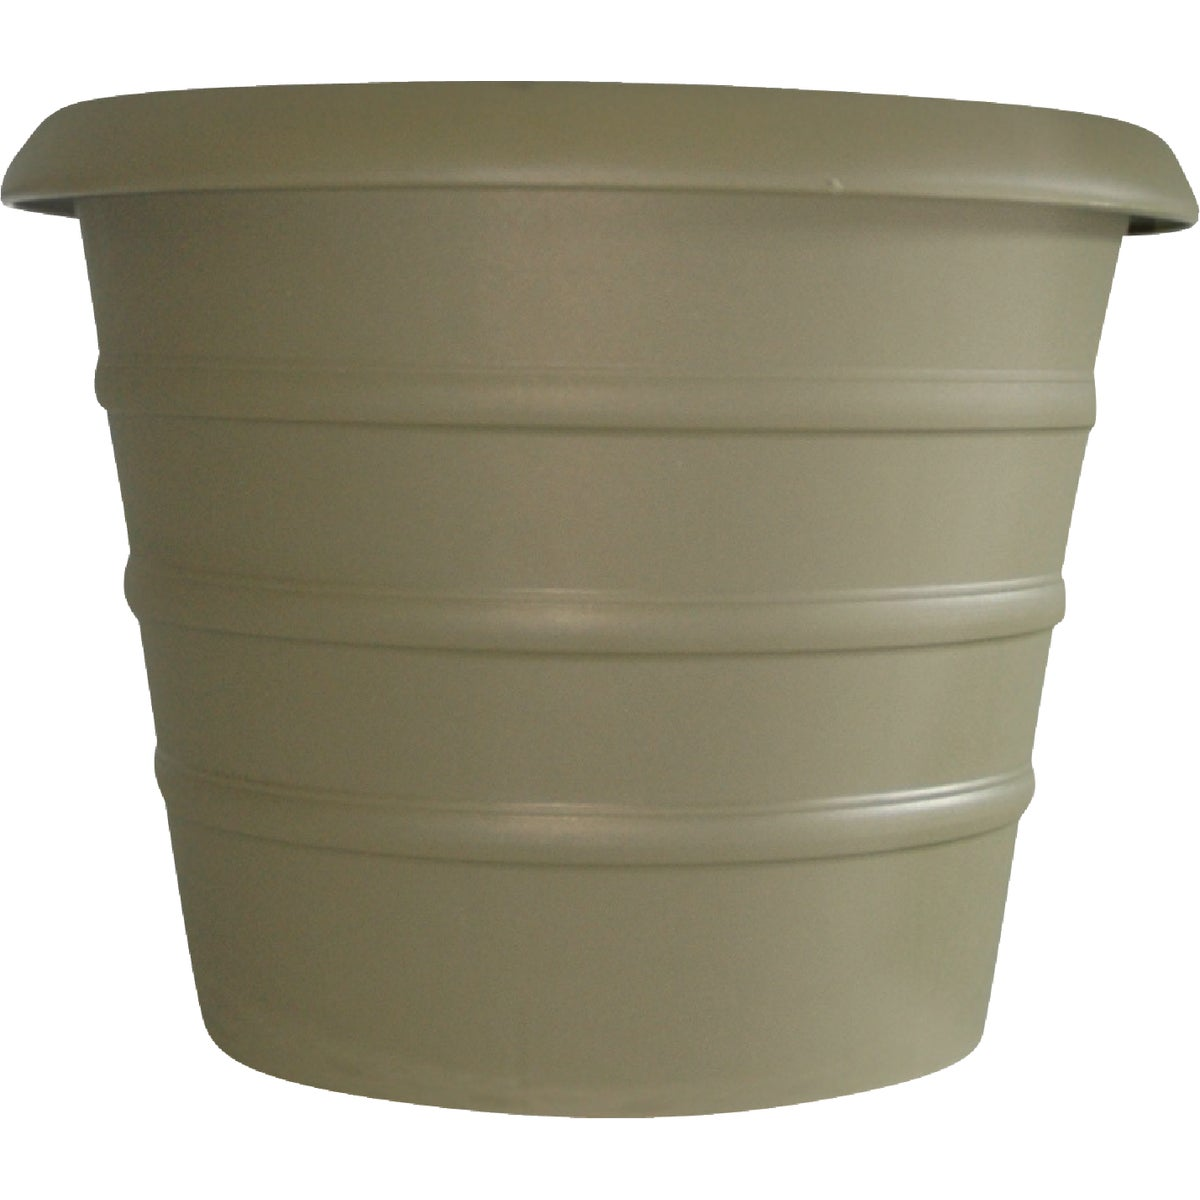 "6""SL GREEN MARINA POT - MSA06000B15 by Myers Industries Inc"